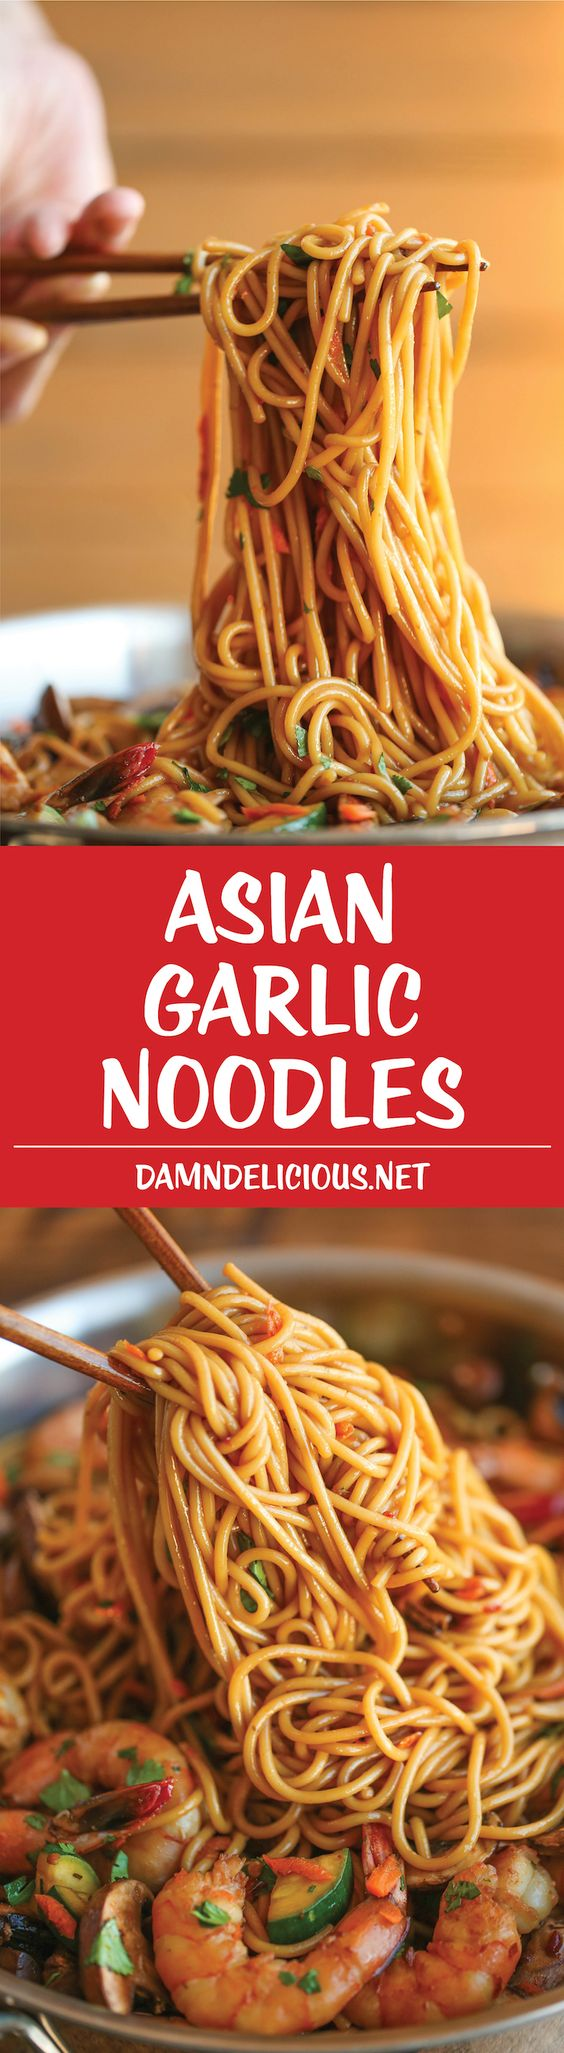 Asian Garlic Noodles - Easy peasy Asian noodle stir-fry using pantry ...